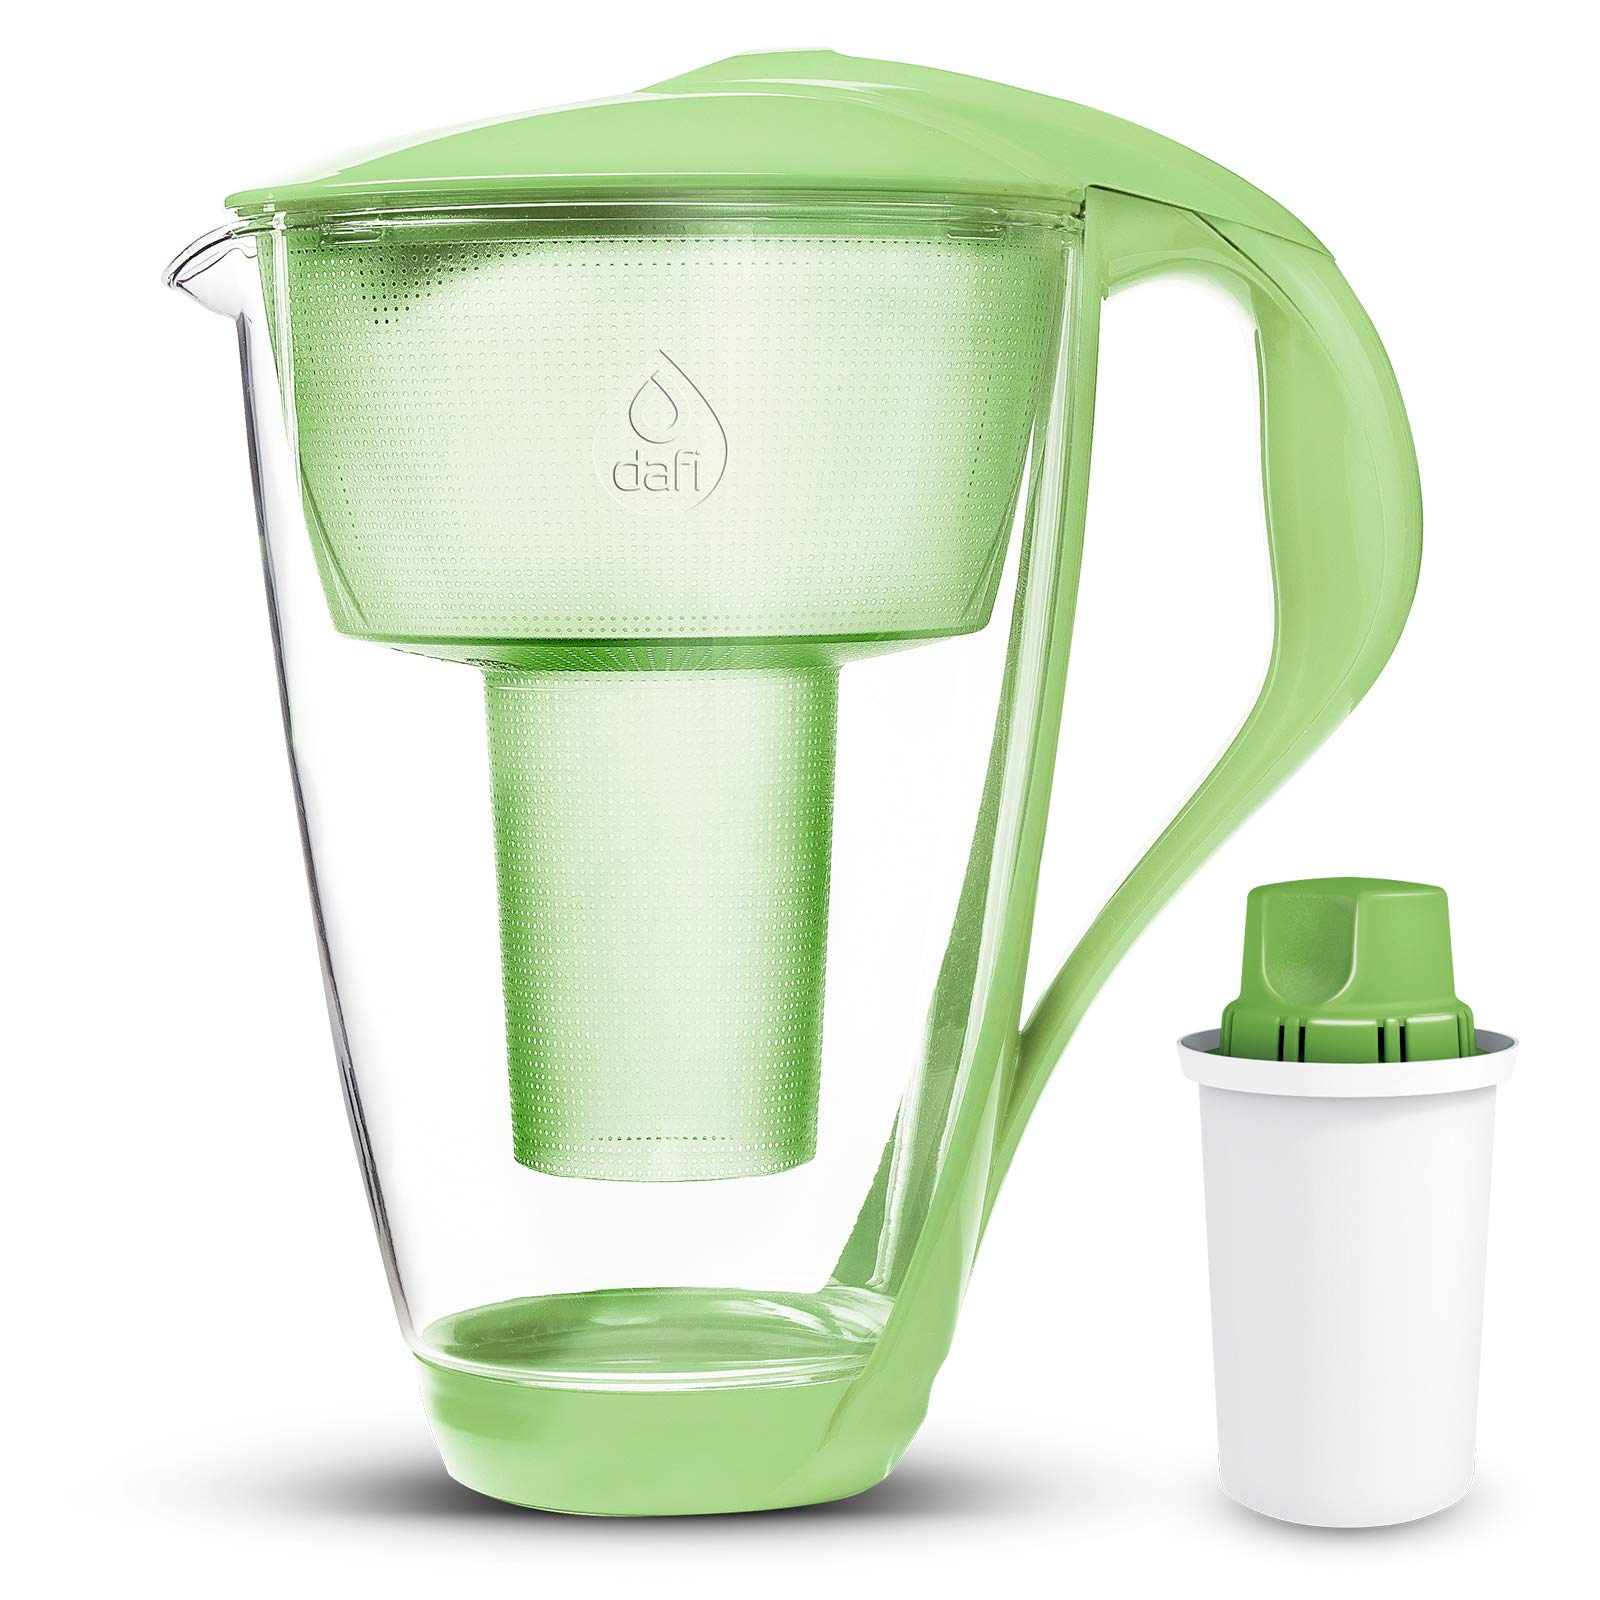 Dafi Alkaline UP Crystal Glass Water Pitcher 8 Cups (Green - Crystal Alkaline Water Pitcher with 1 Alkaline UP pH Water Filter)